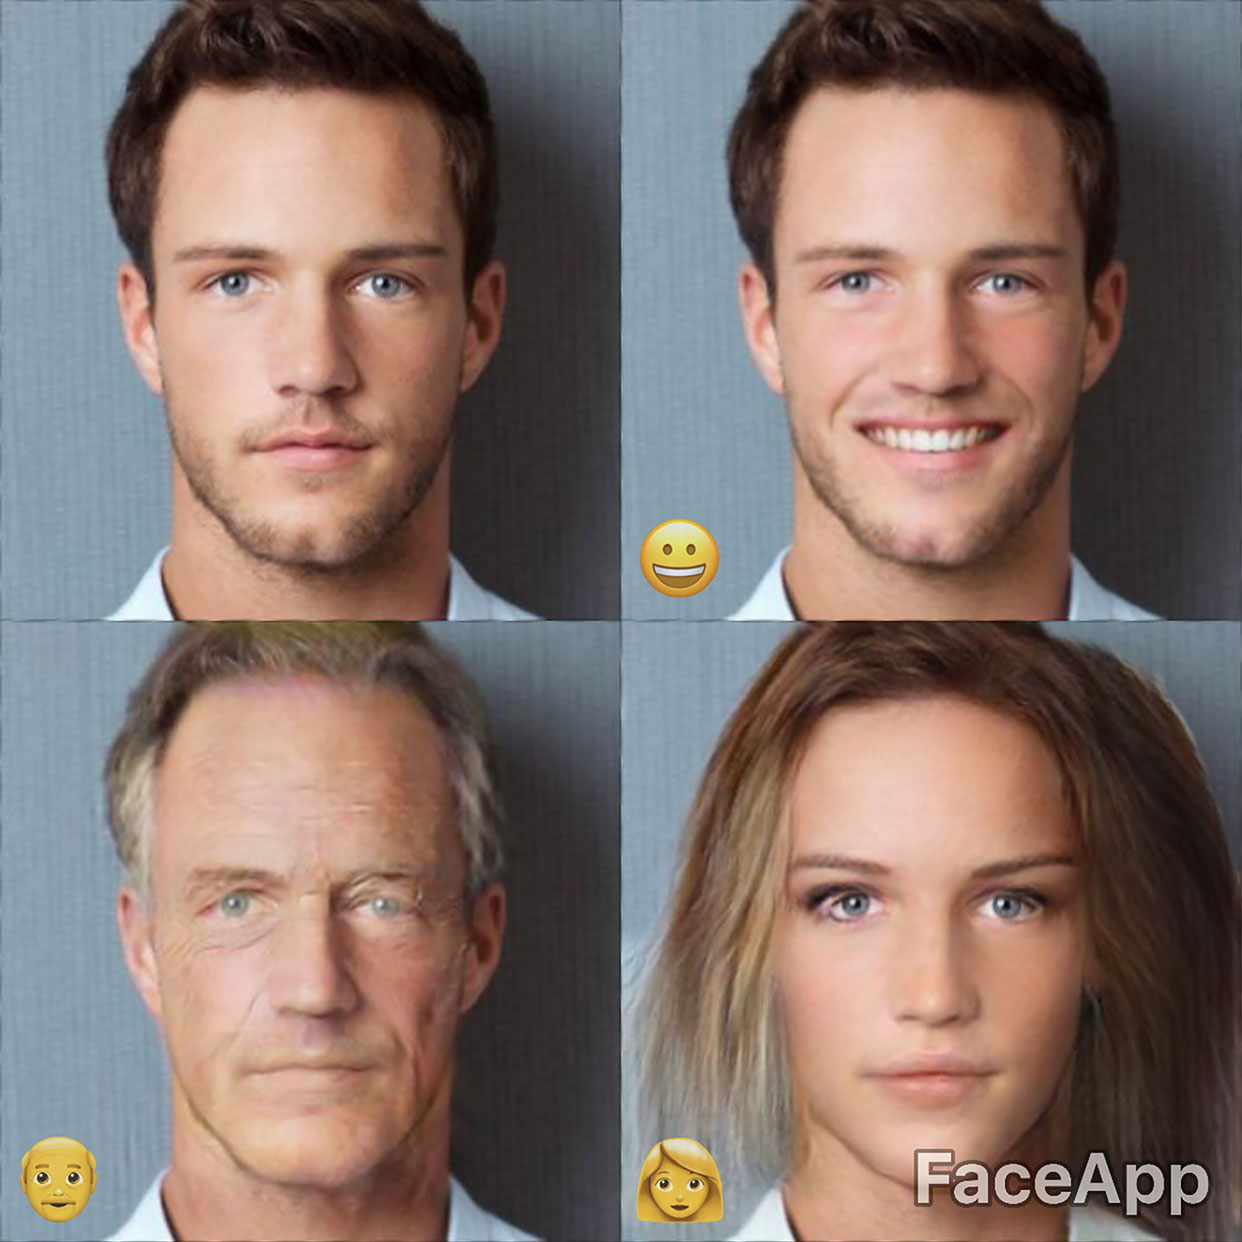 Faceapp – a glimpse of the future for trans people?